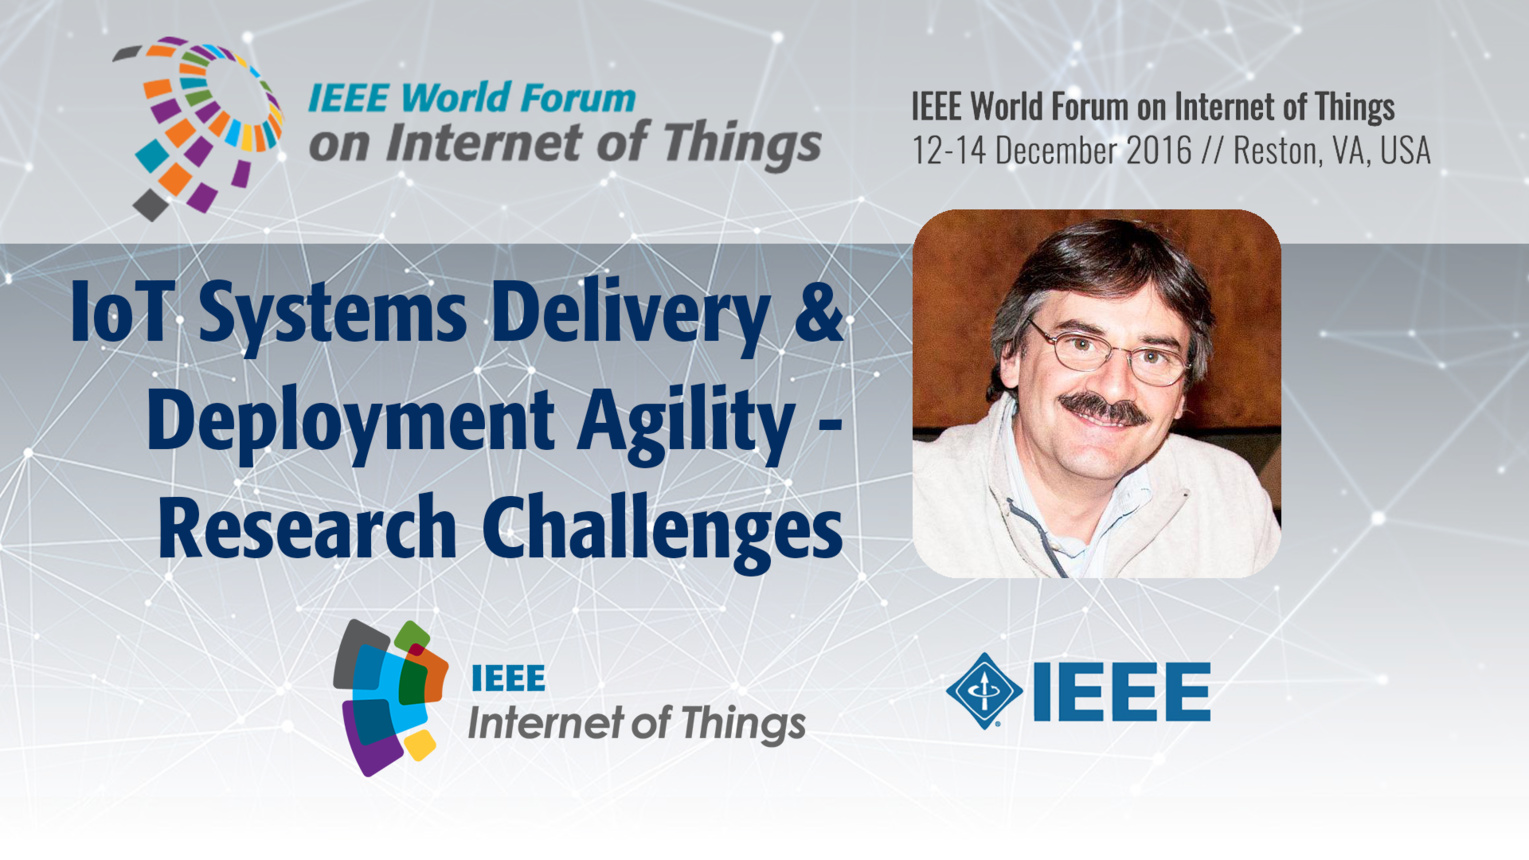 Kostas Kontogiannis: IoT Systems Delivery and Deployment Agility - Research Challenges and Issues: WF IoT 2016